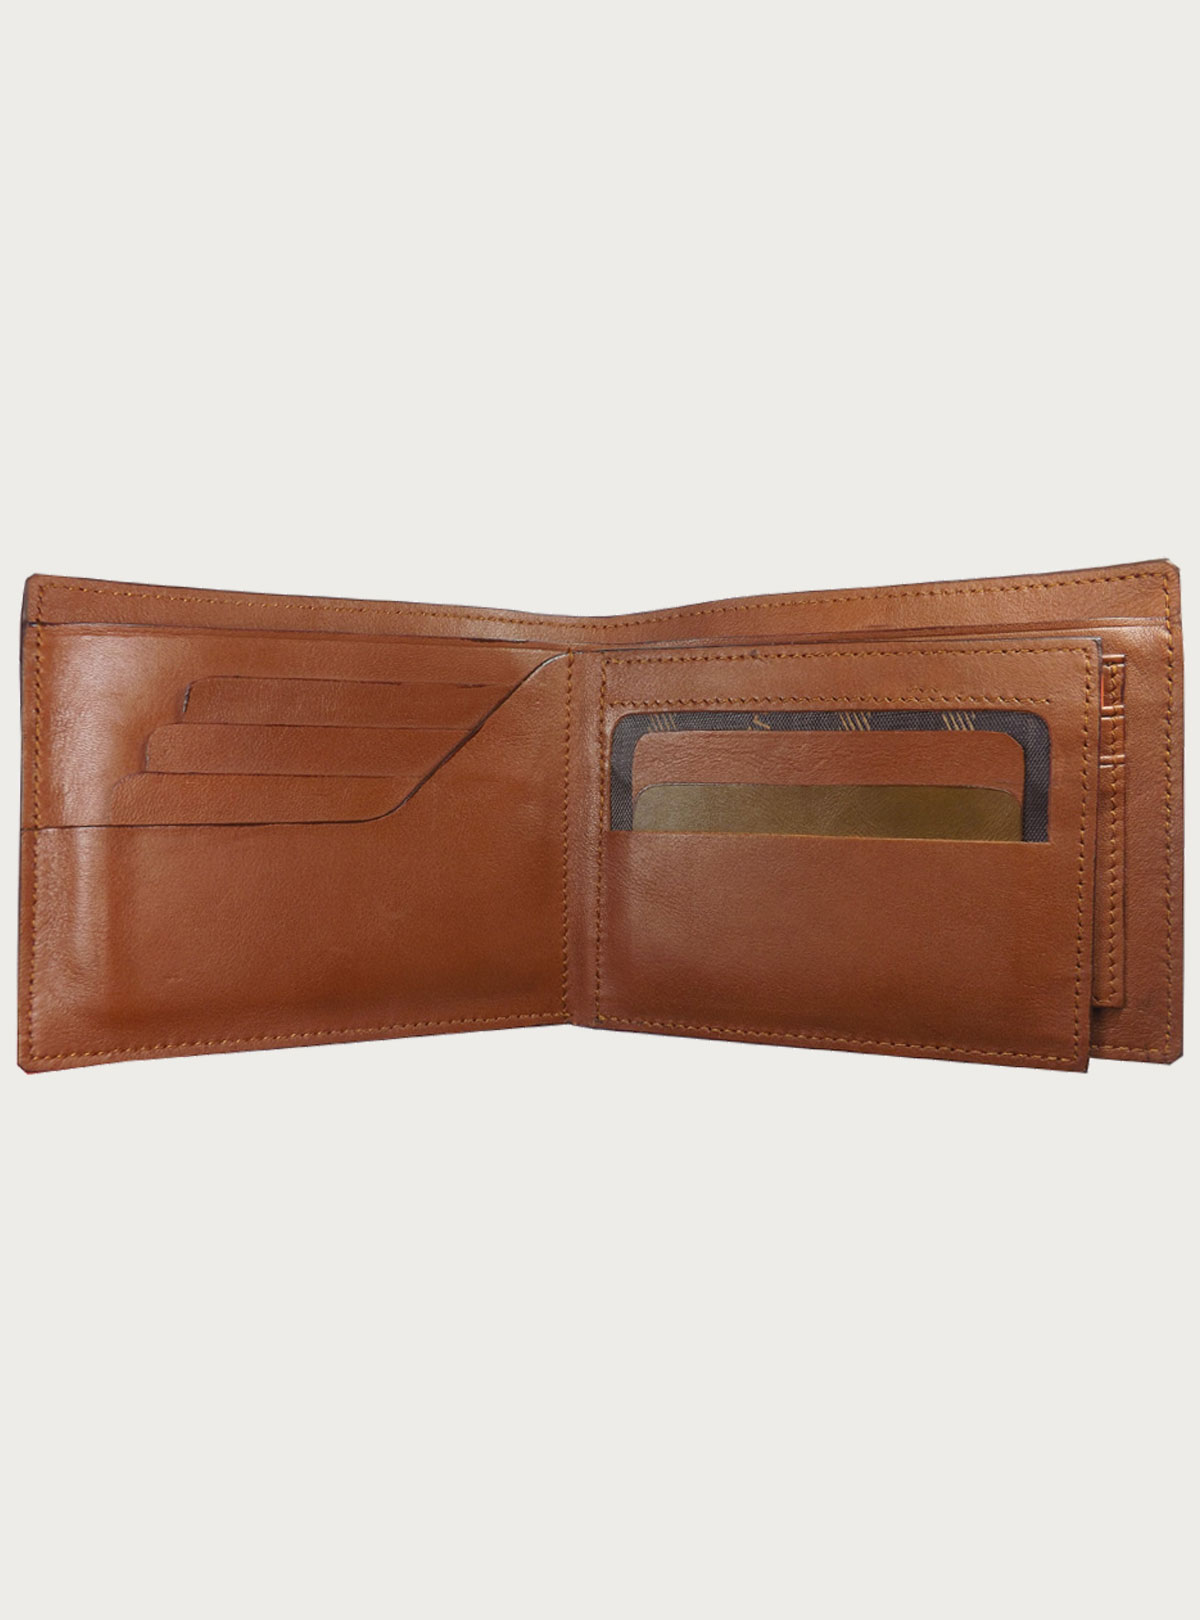 Louis Vuitton 3 part Leather Wallet AR75